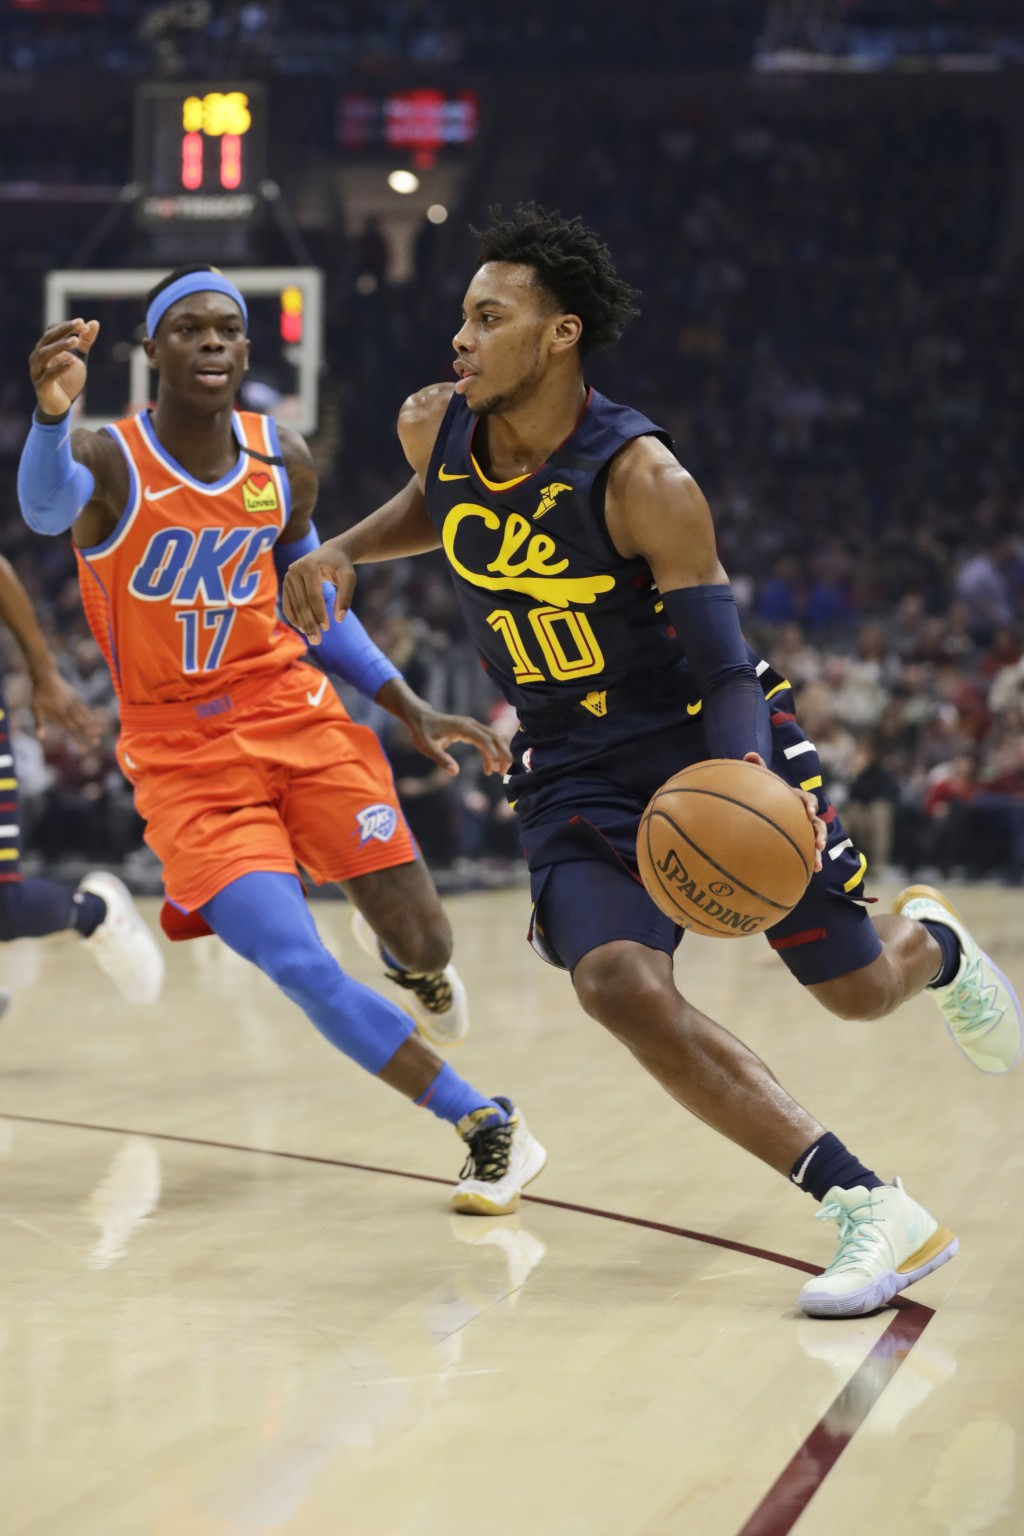 Cleveland Cavaliers' Darius Garland (10) drives past Oklahoma City Thunder's Dennis Schroder (17) in the first half of an NBA basketball game, Saturda...